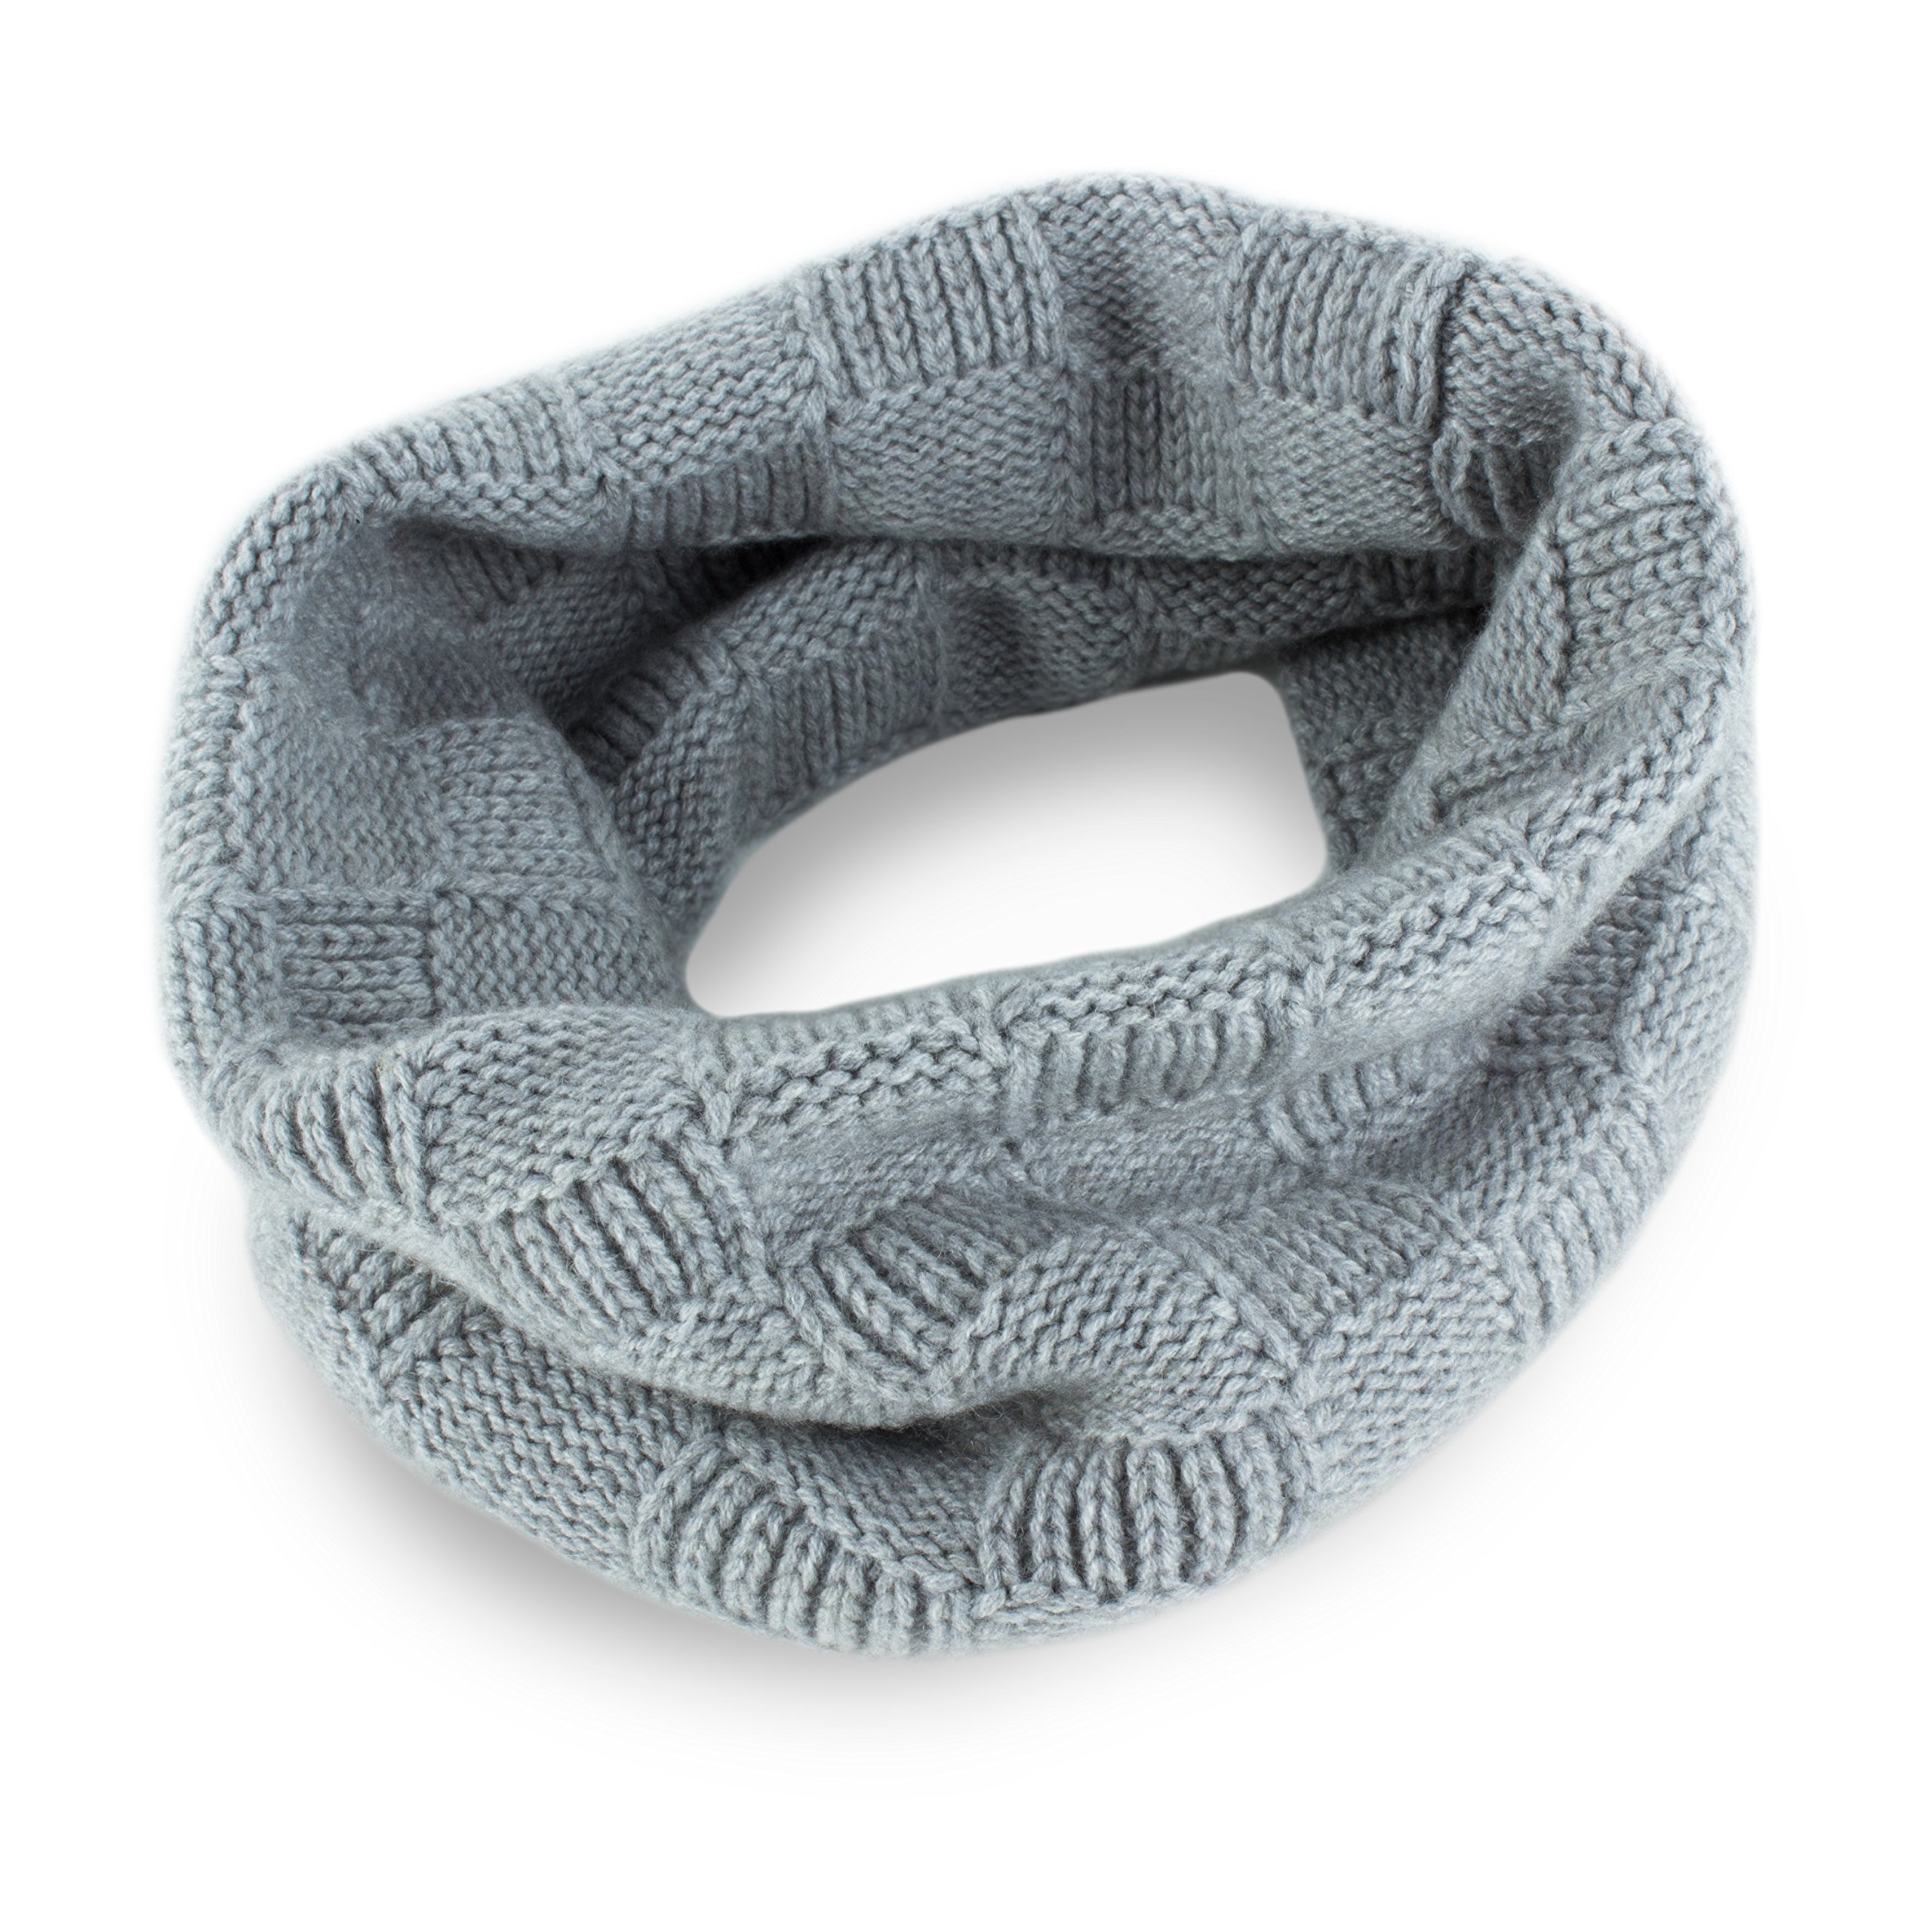 Love Cashmere Mens Checked 100% Cashmere Snood - Light Gray - made in Scotland - RRP $160 by Love Cashmere (Image #1)